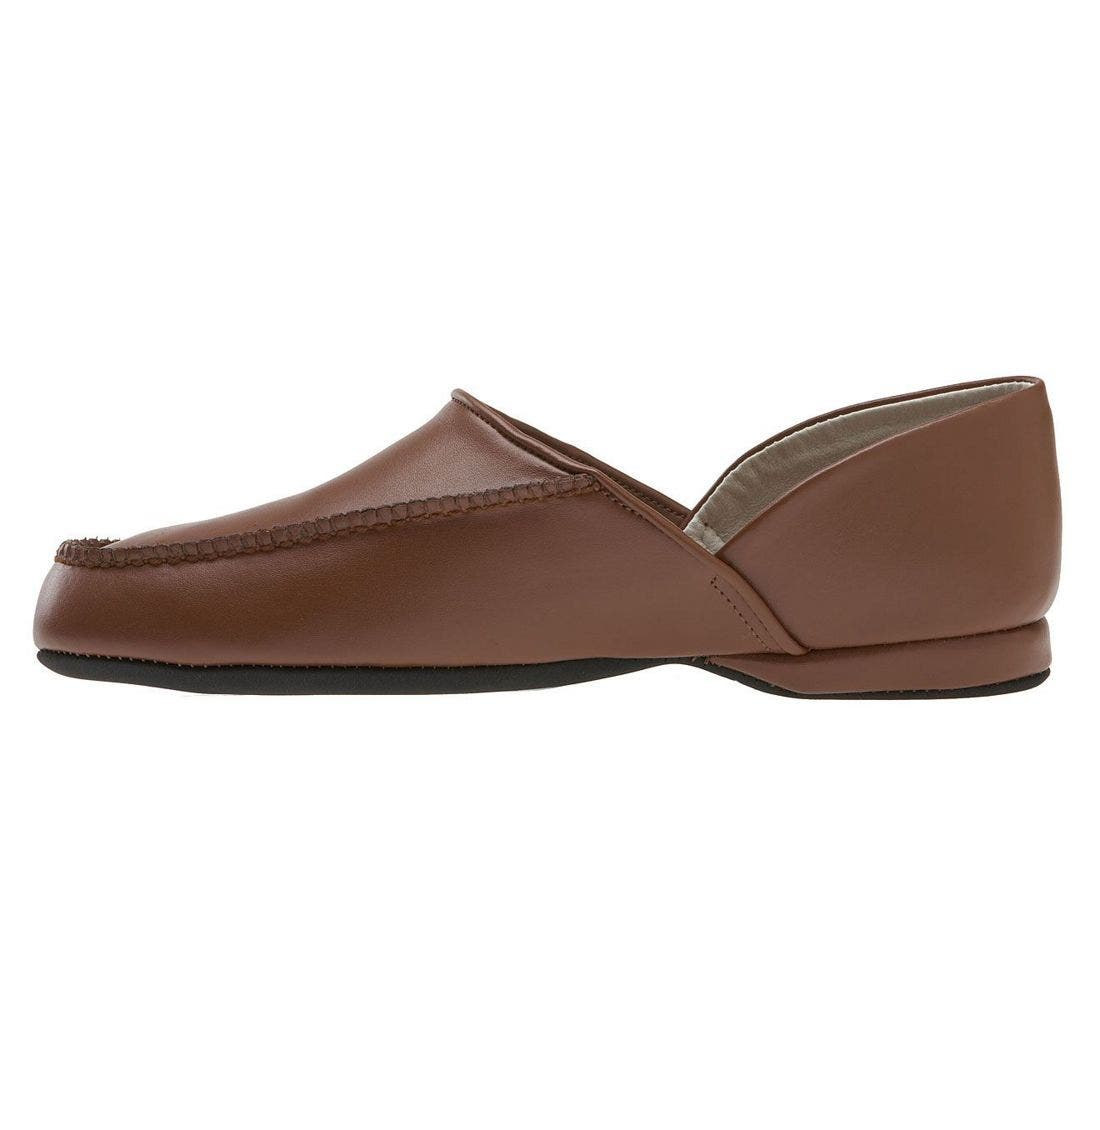 Alternate Image 2  - L.B. Evans 'Chicopee®' Slipper (Online Only)